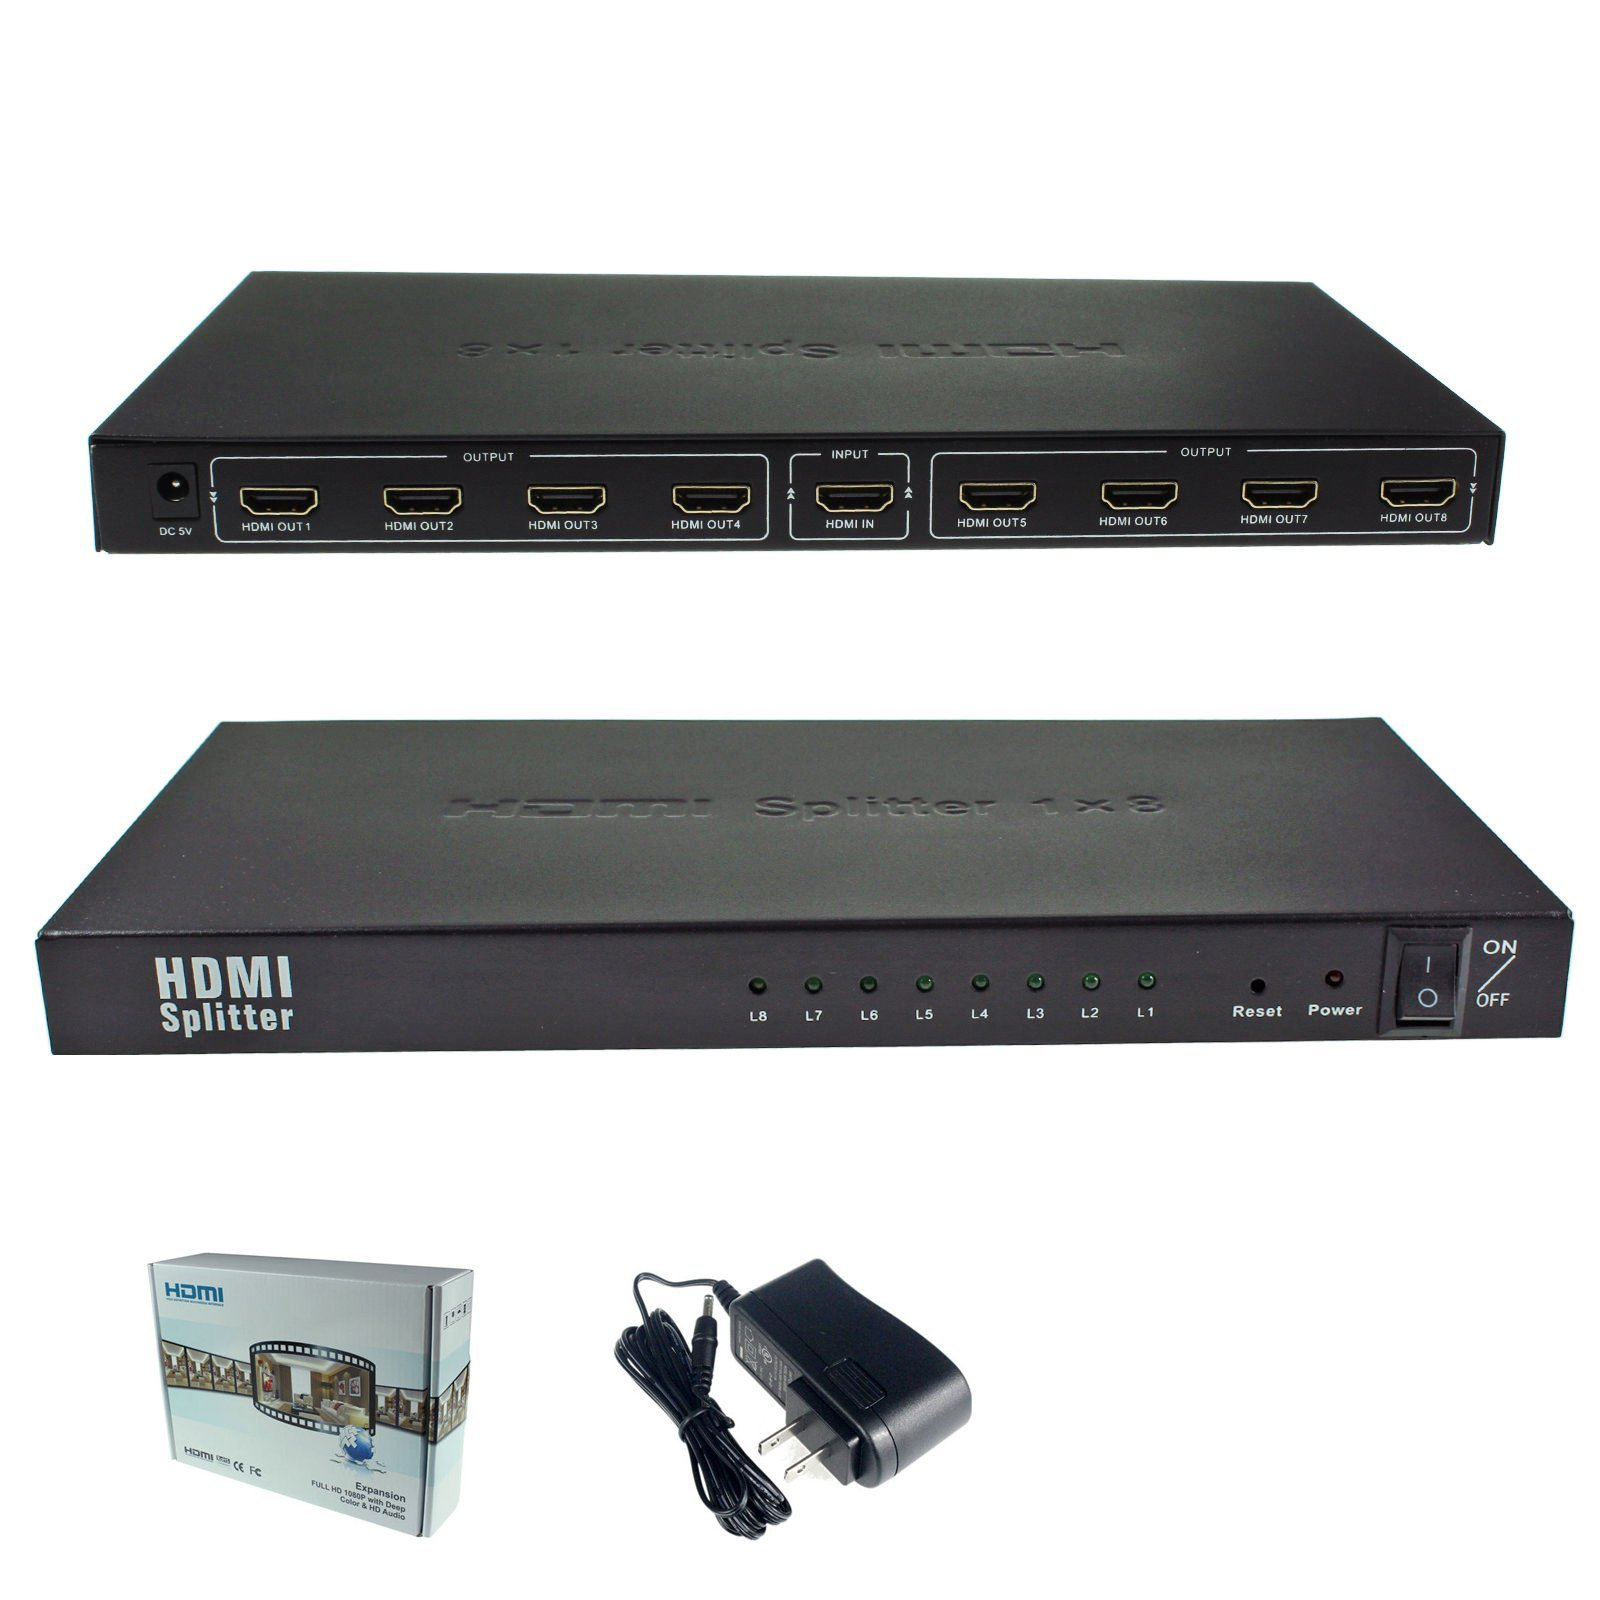 1x8 8 Ports HDMI Powered Splitter for Full HD 1080P & 3D Support (One Input to Eight Outputs)